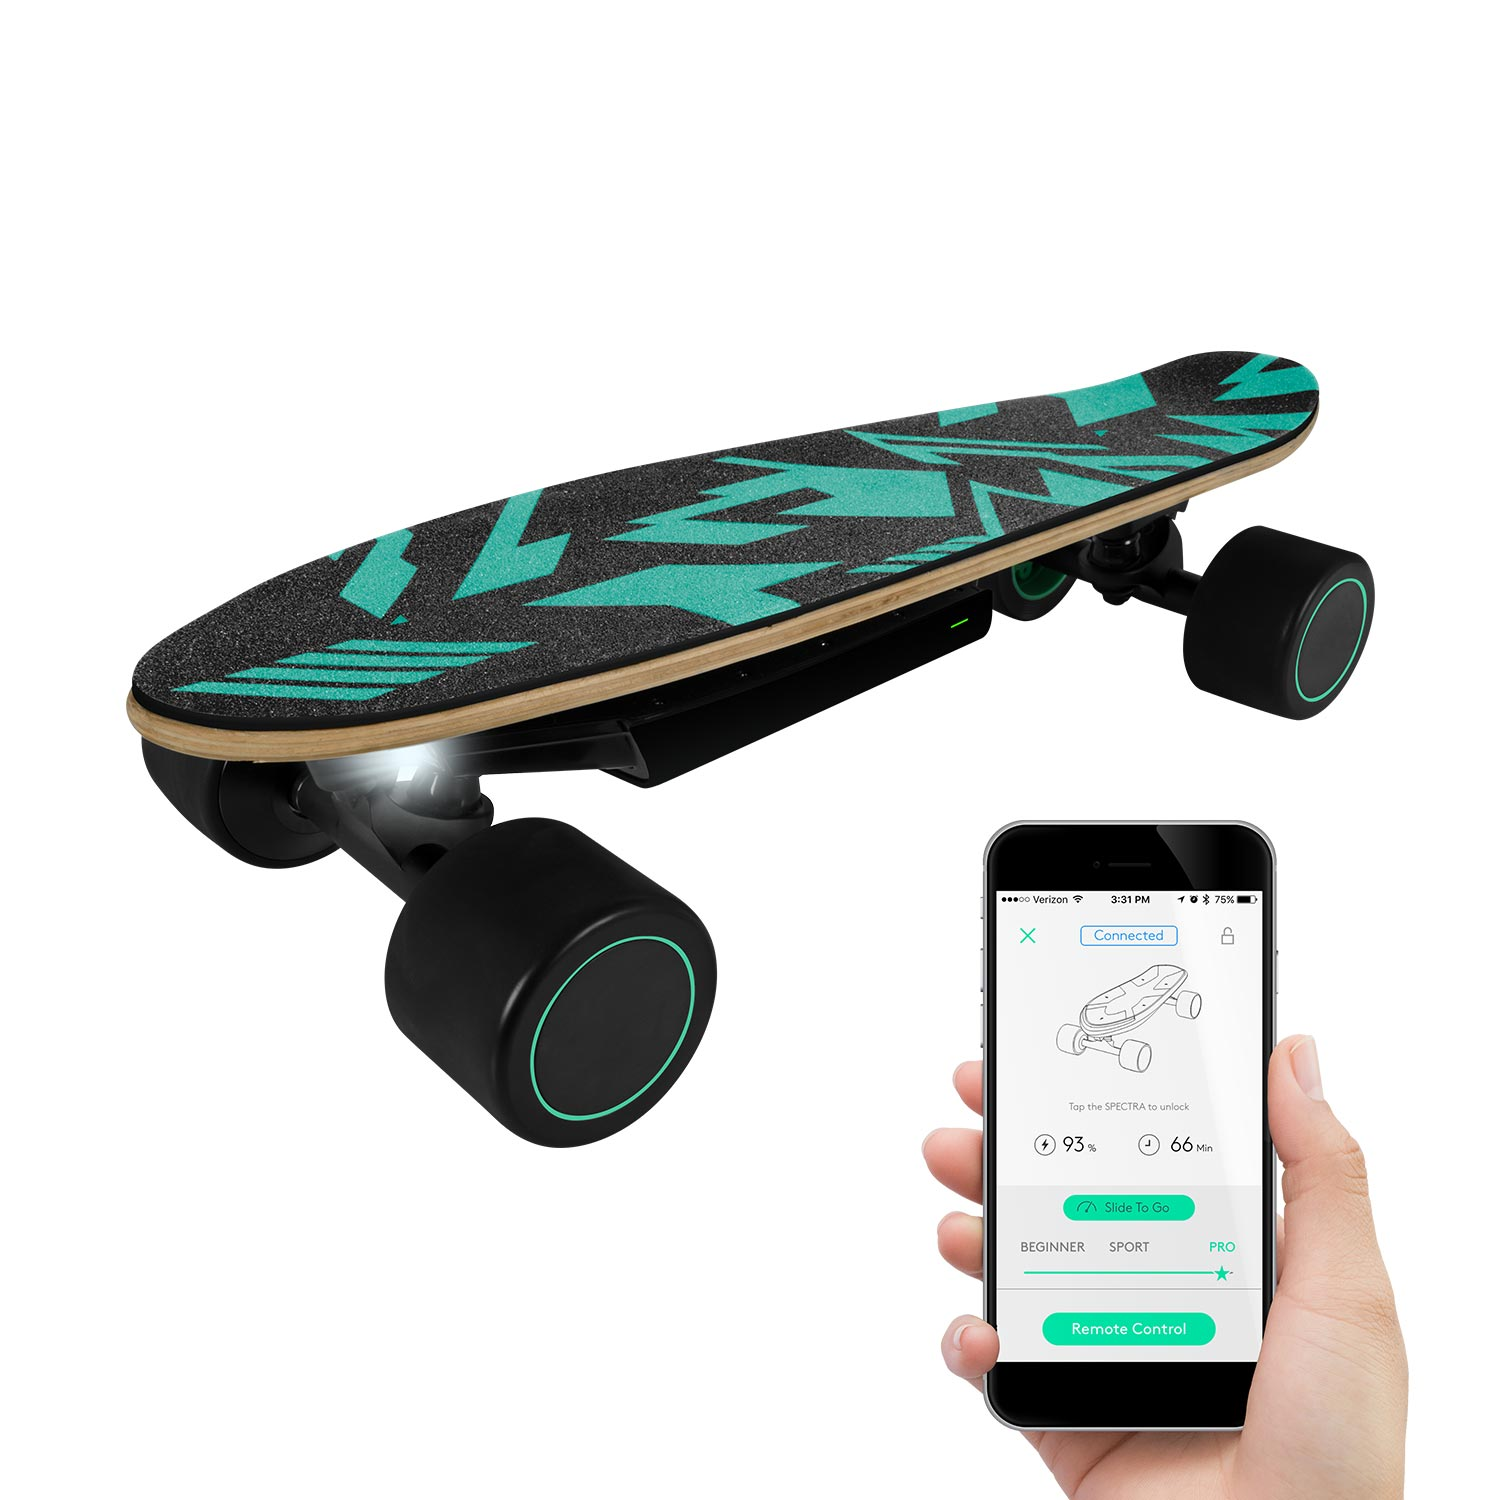 Rayscoo Built-in LED Light Teamgee Electric Skateboard 10MPH Safety Speed Portable Mini Skateboard Hands Free